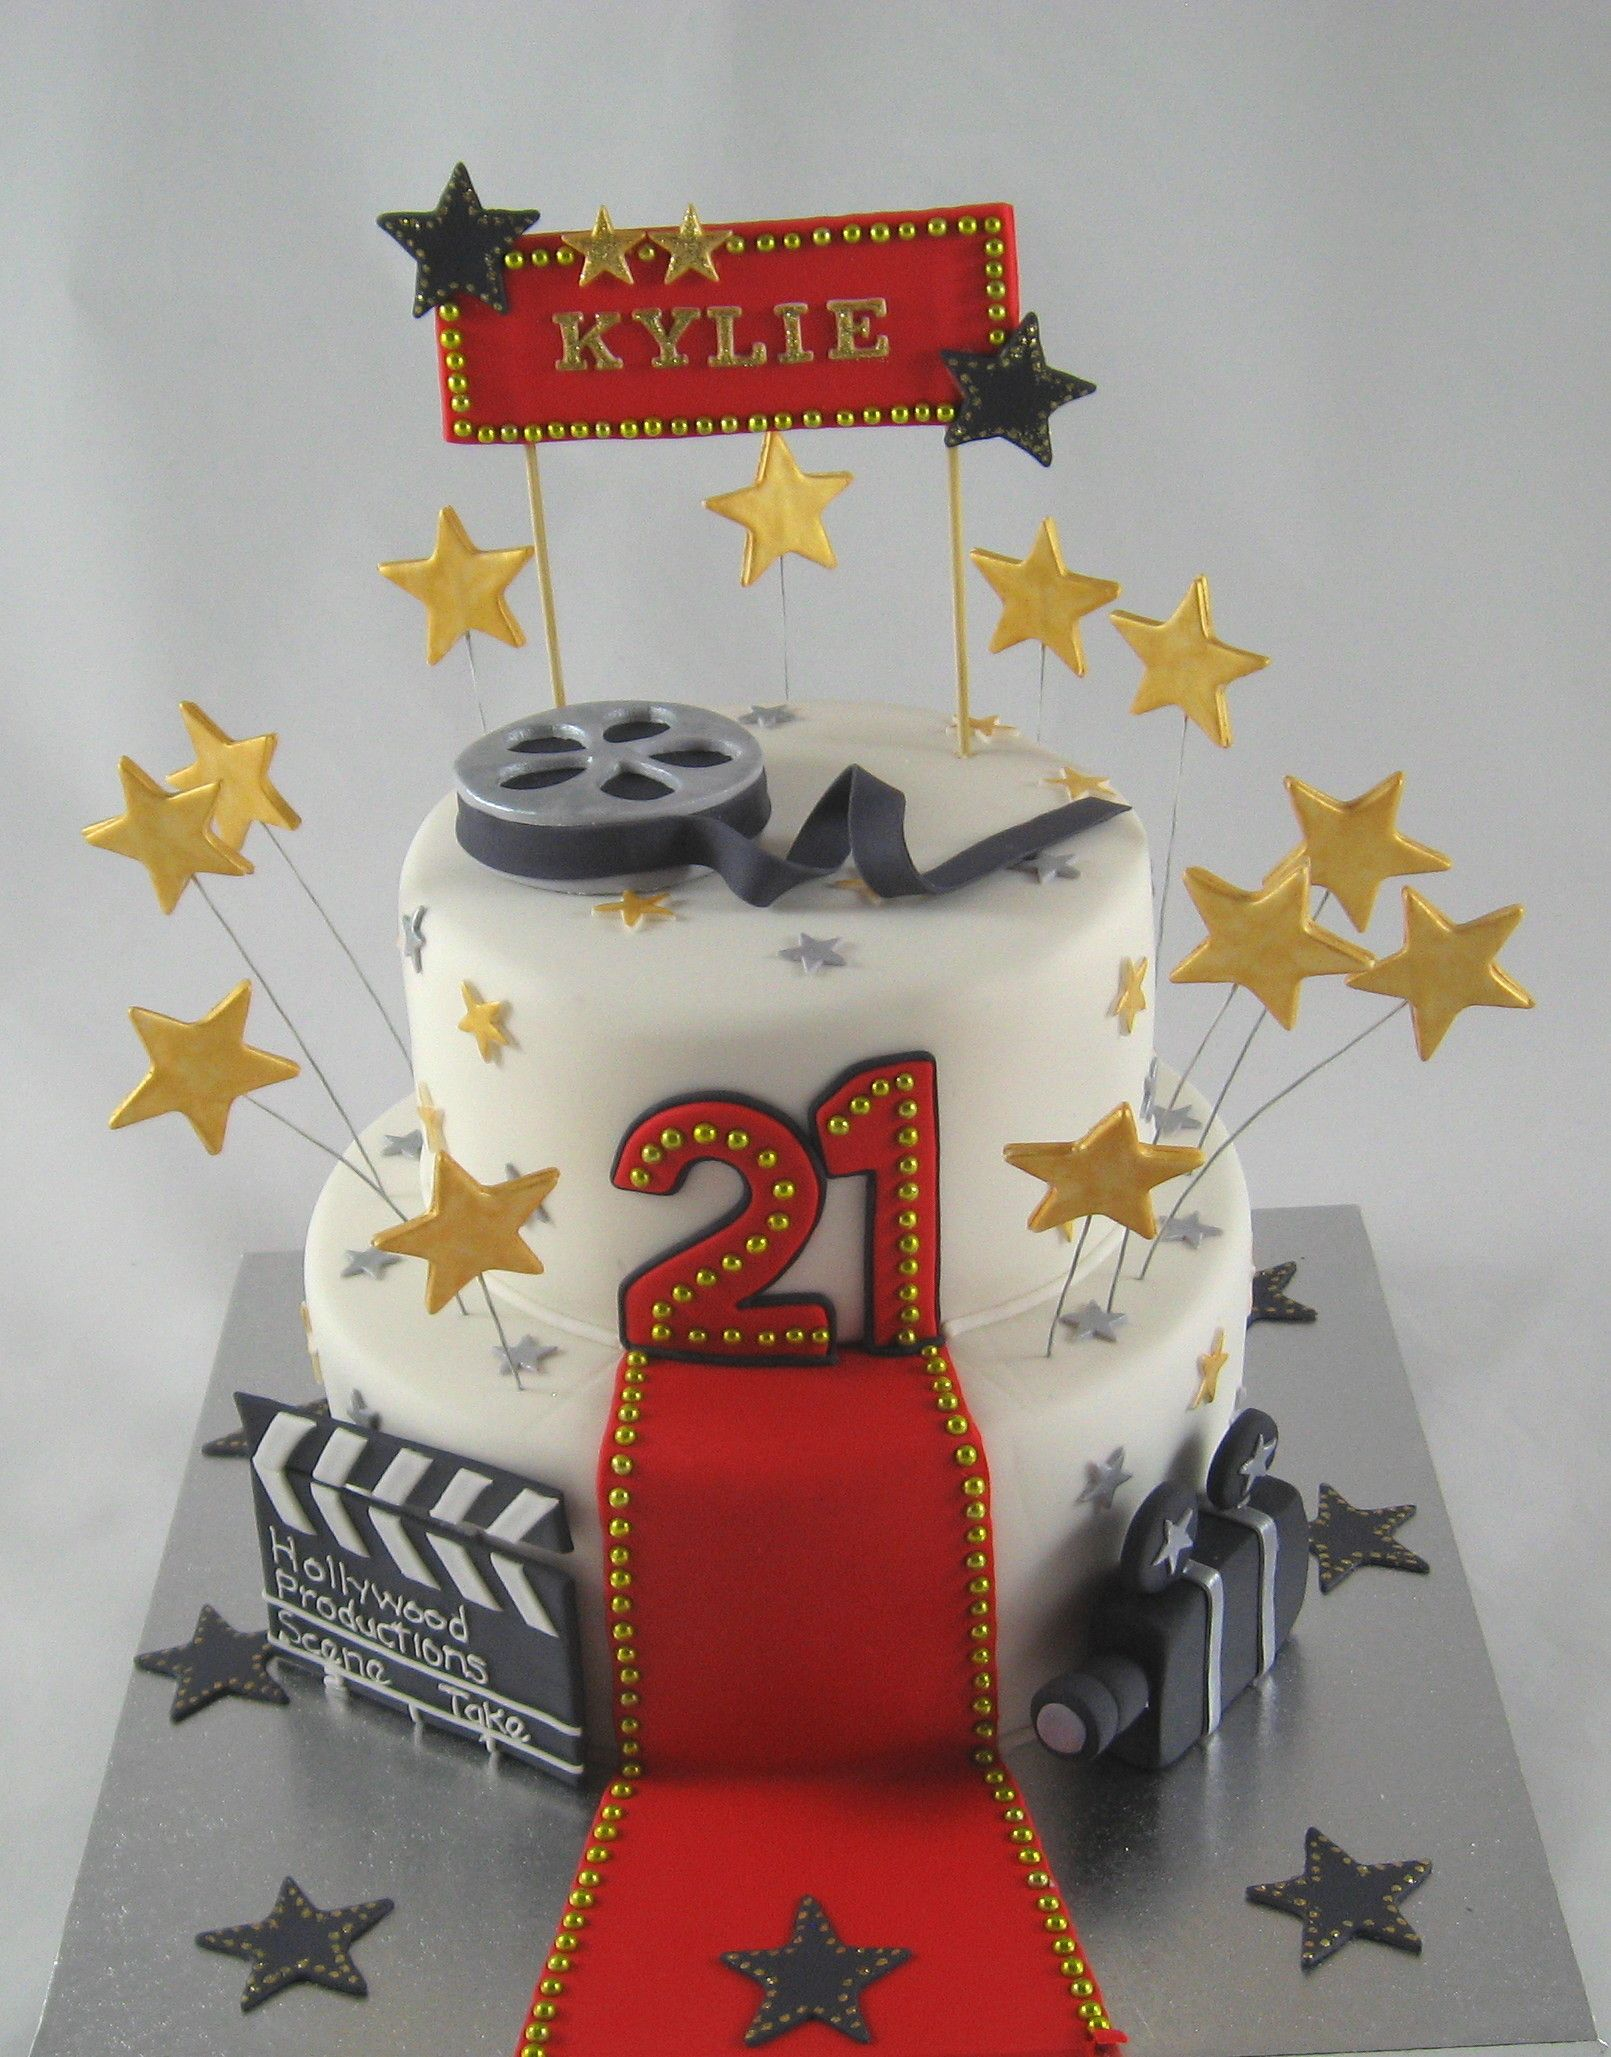 Hollywood Roter Teppich Hollywood Red Carpet 21st Birthday Cake By Cakesisters